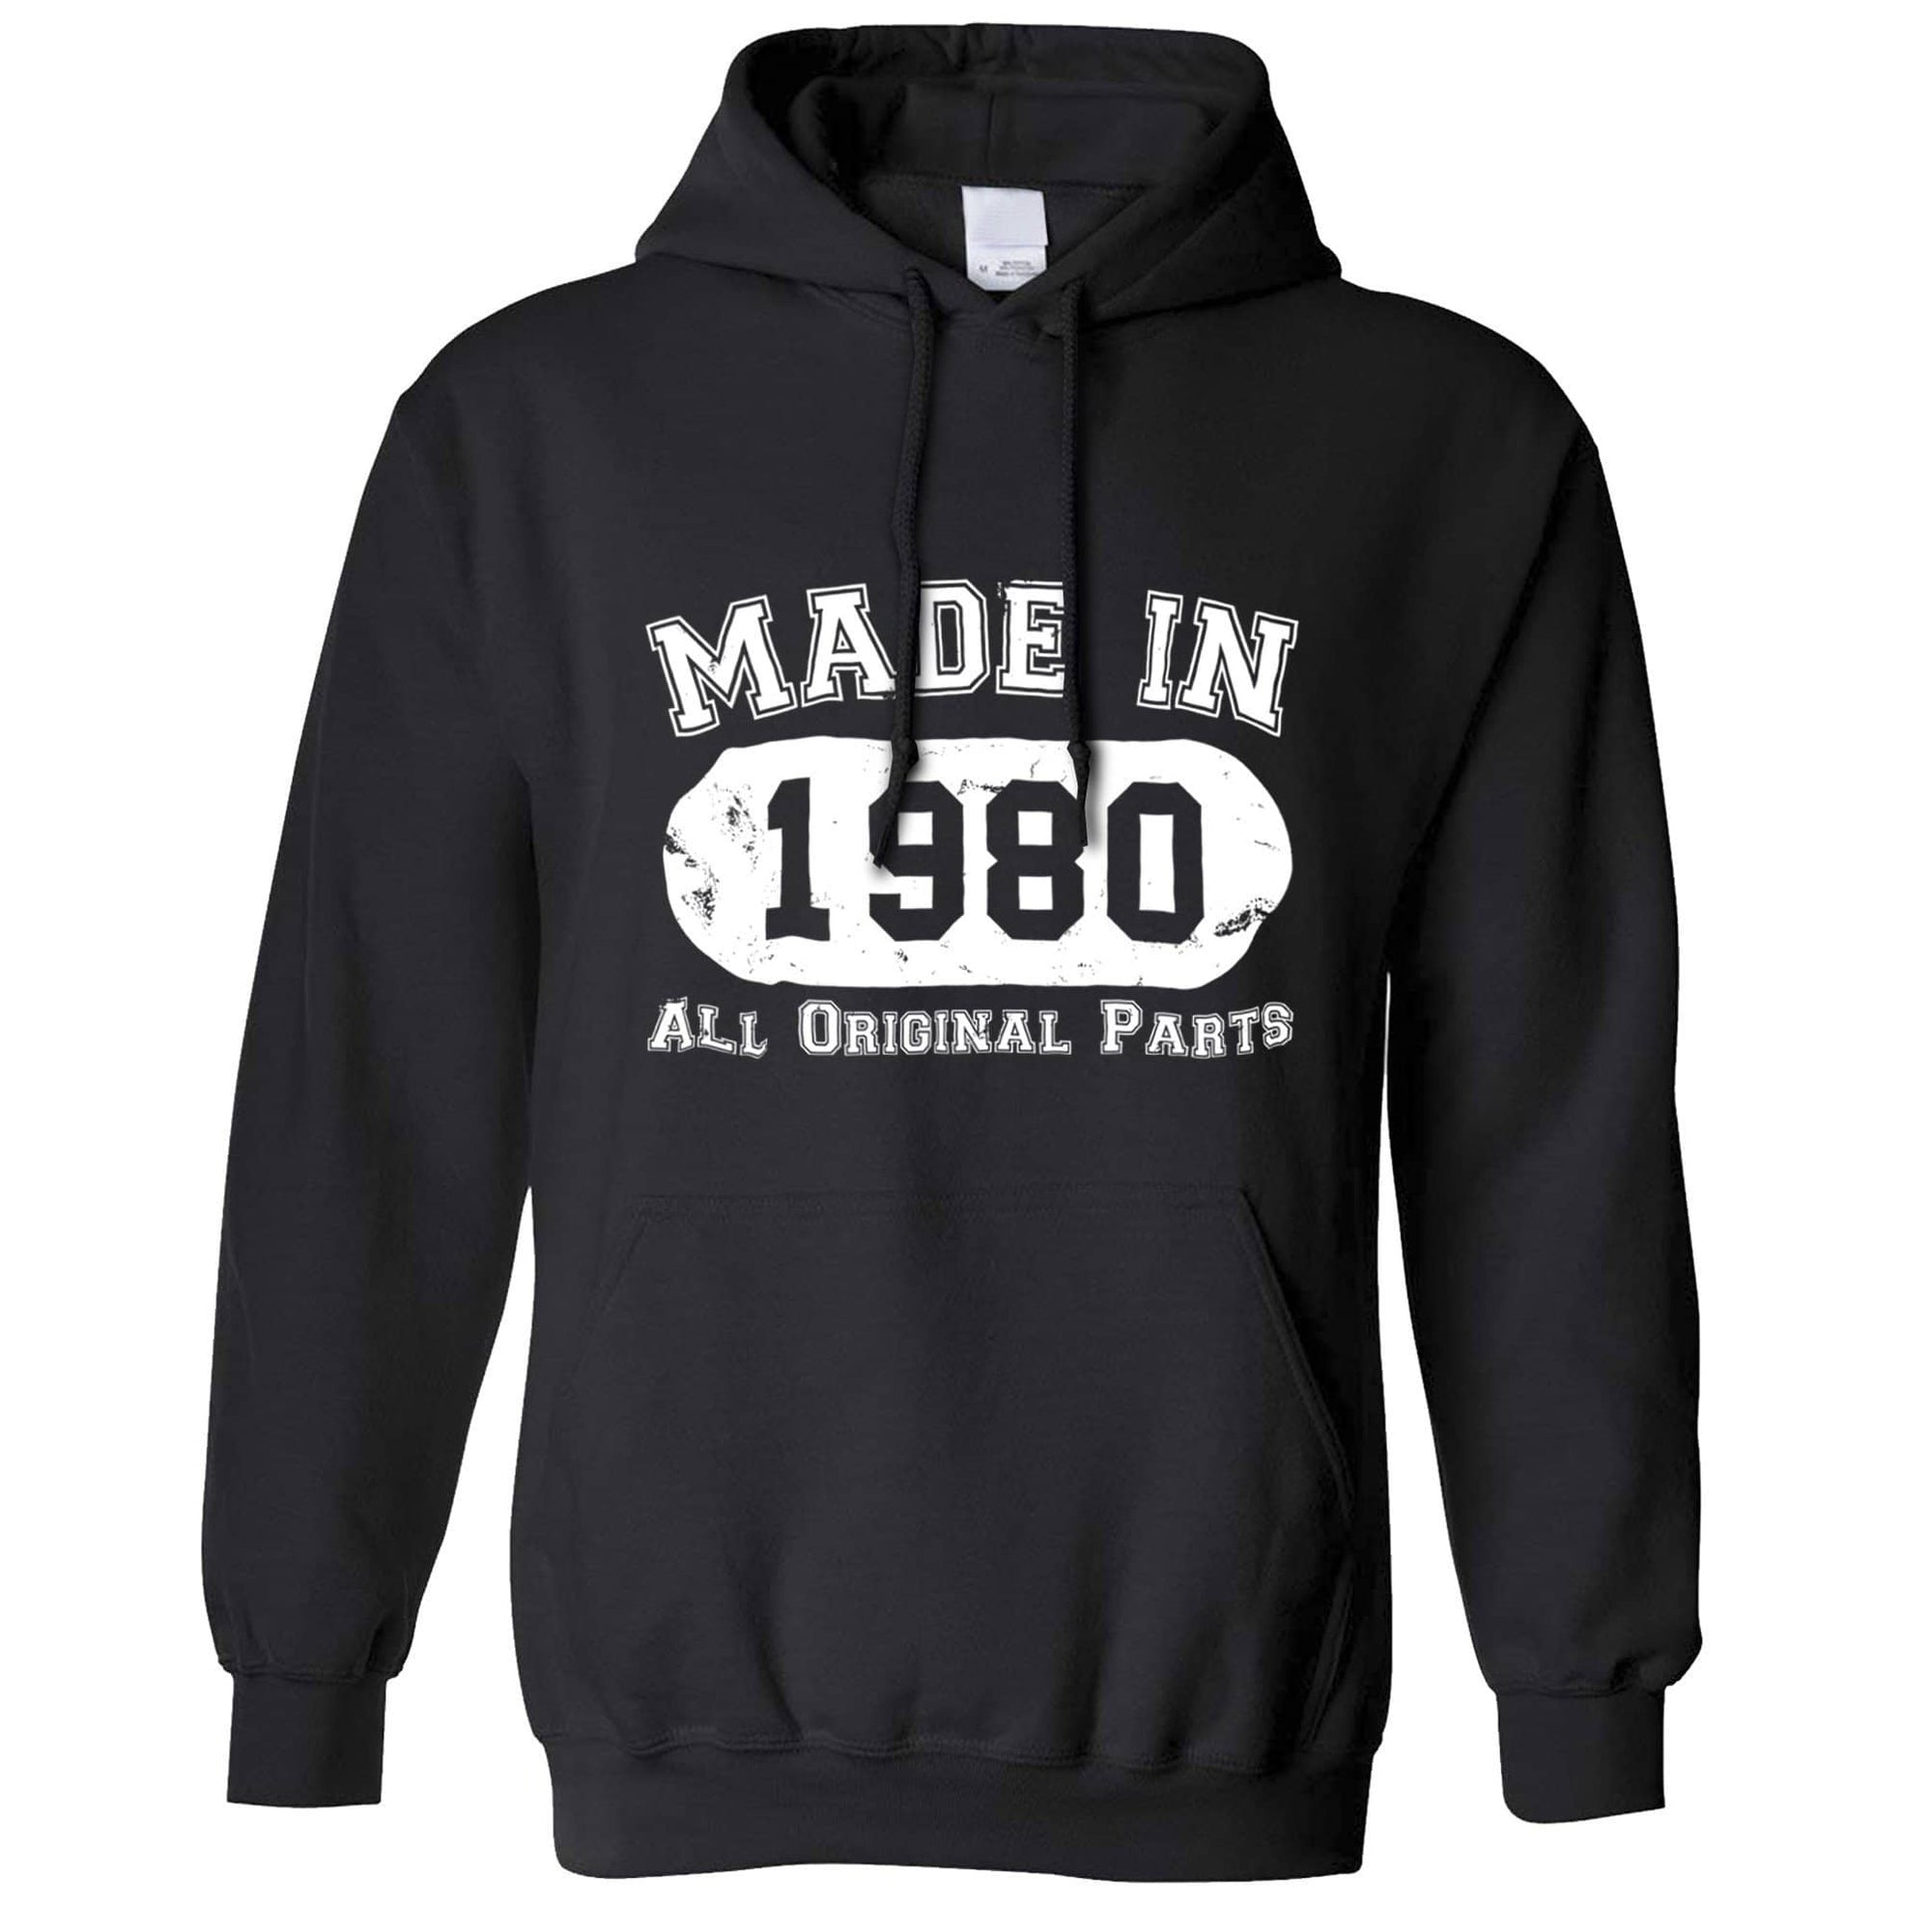 Made in 1980 All Original Parts Hoodie [Distressed]